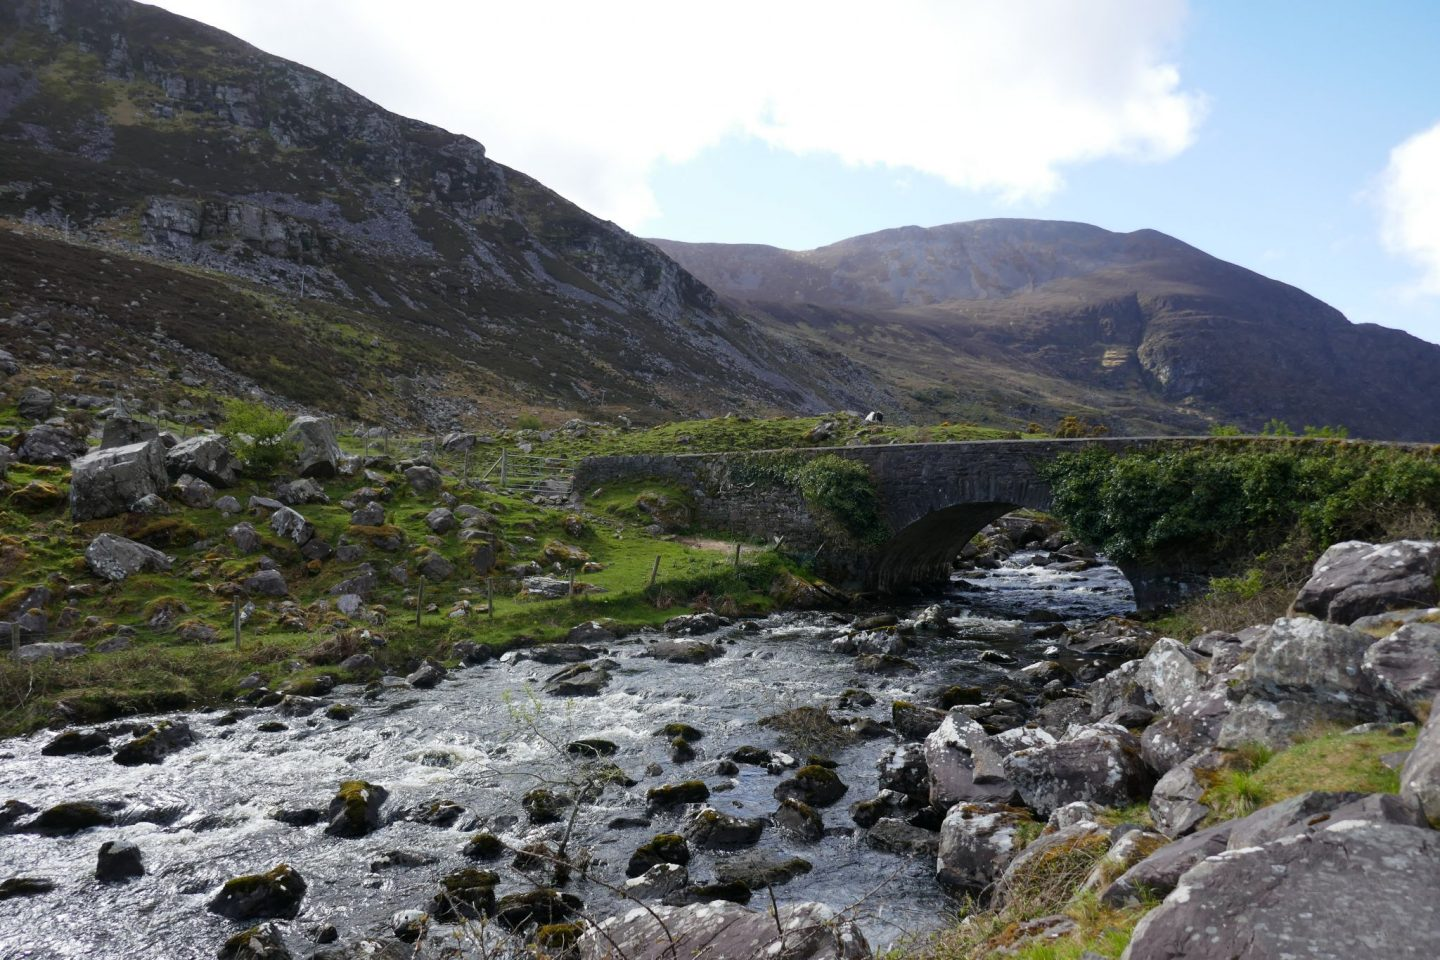 The Wishing Bridge, Gap of Dunloe